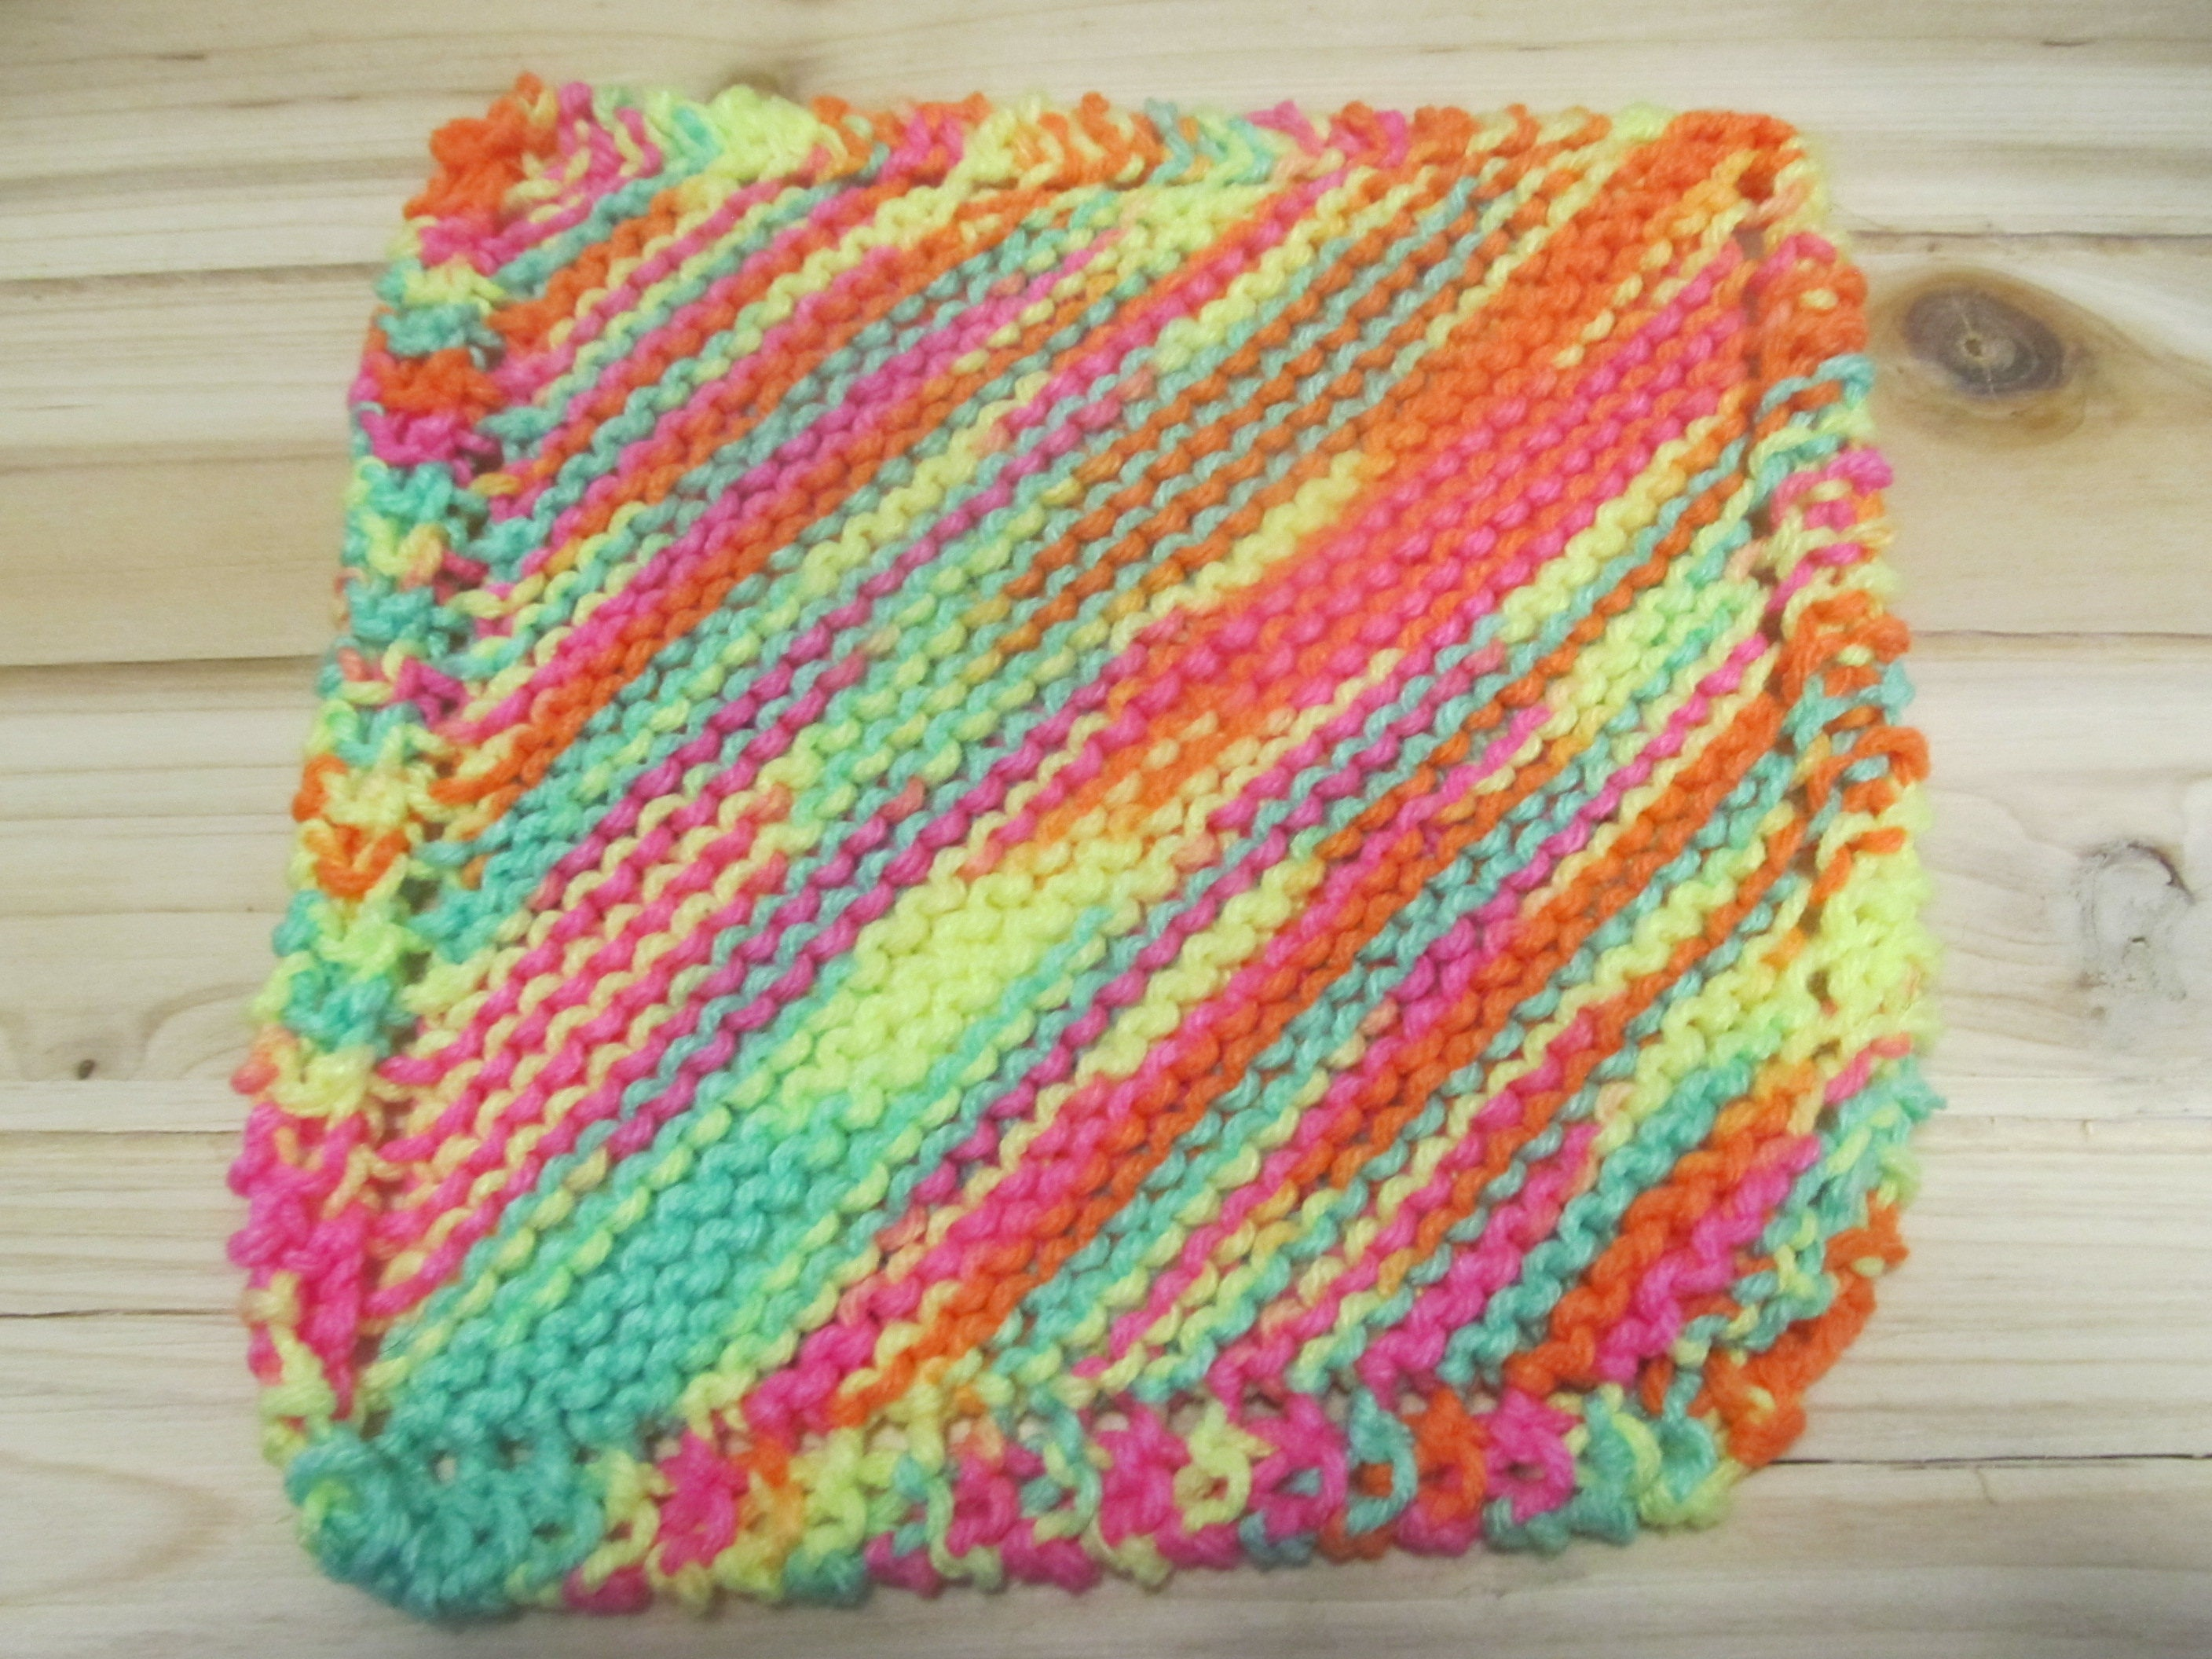 Knitting Gifts For Mum : Knitted dishcloth handmade gifts for her mom